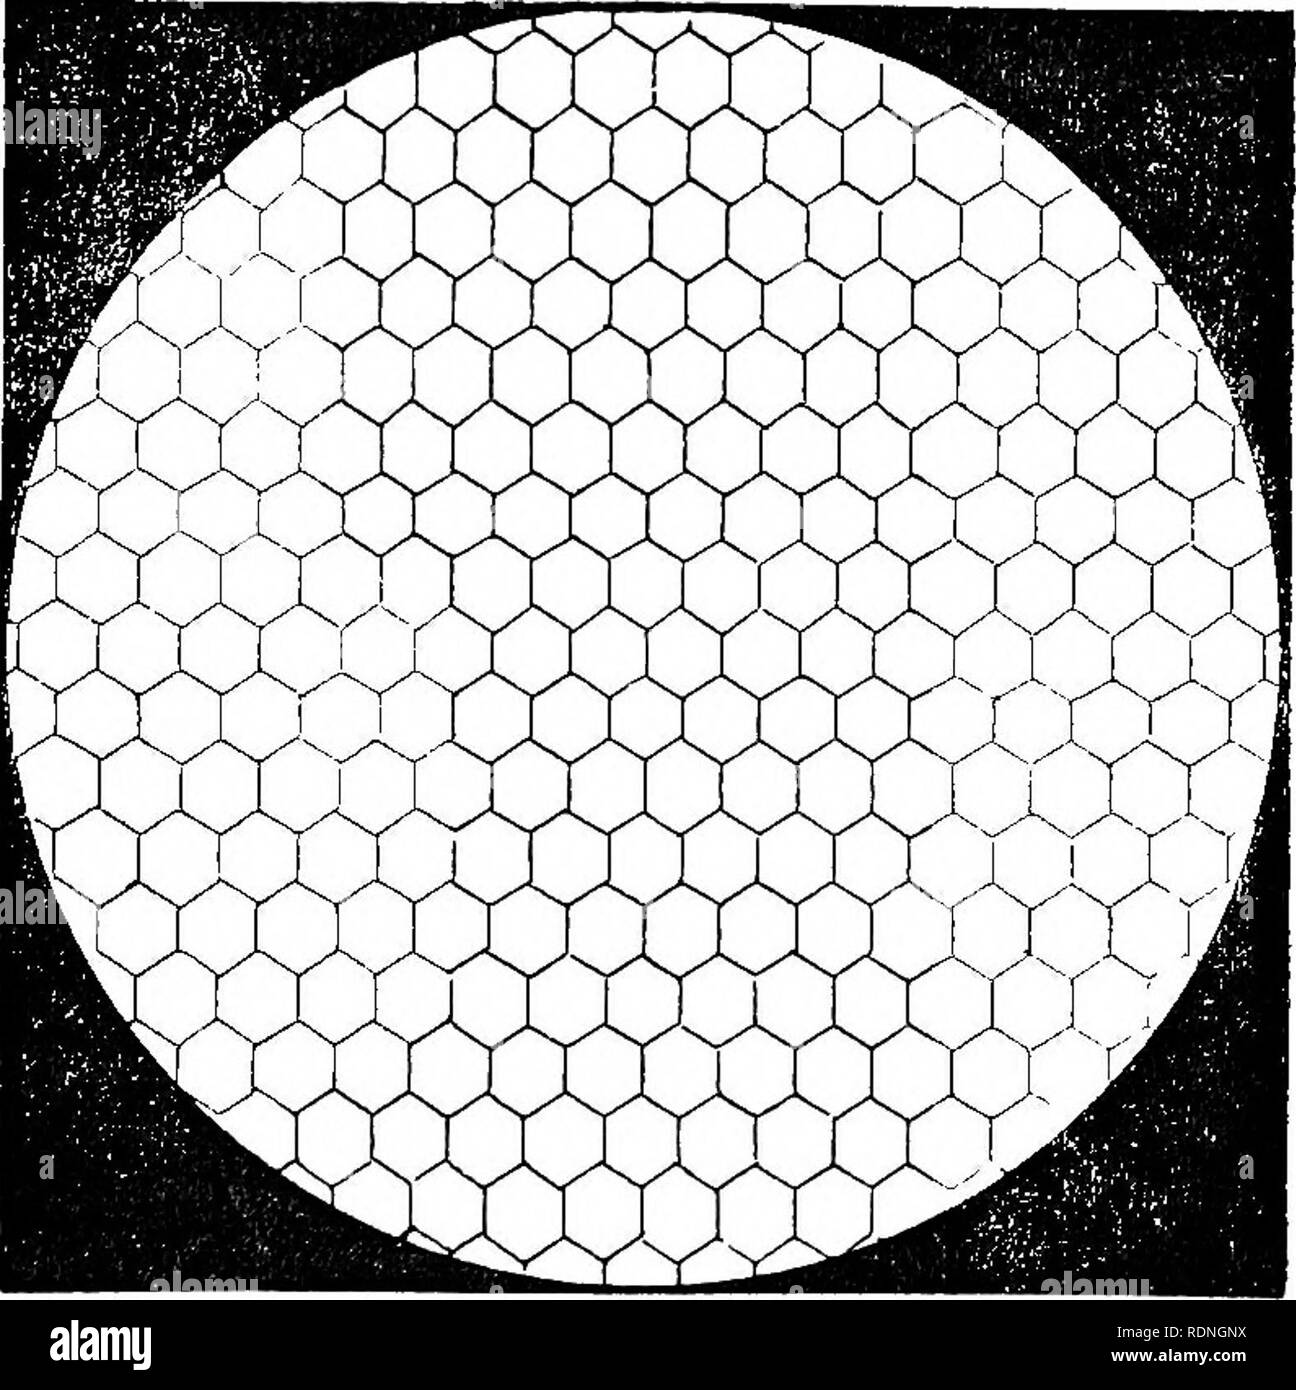 . The bee and white ants, their manners and habits; with illustrations of animal instinct and intelligence. Bees; Instinct; Termites. THE BEE. tkus a geometrical figure, having as mucli regularity as the hexagonal tube, of which it forms the termination, but constraoted Fig. 21.. on a totally different principle. The angles of the lozenges, which form its sides, are one obtuse and the other acute ; and these pyramidal bases of the cells, on one side of the comb, fit into corresponding cavities, made by the similar pyramidal bases of the cells, on the other side of the comb, so as to leave no i - Stock Image